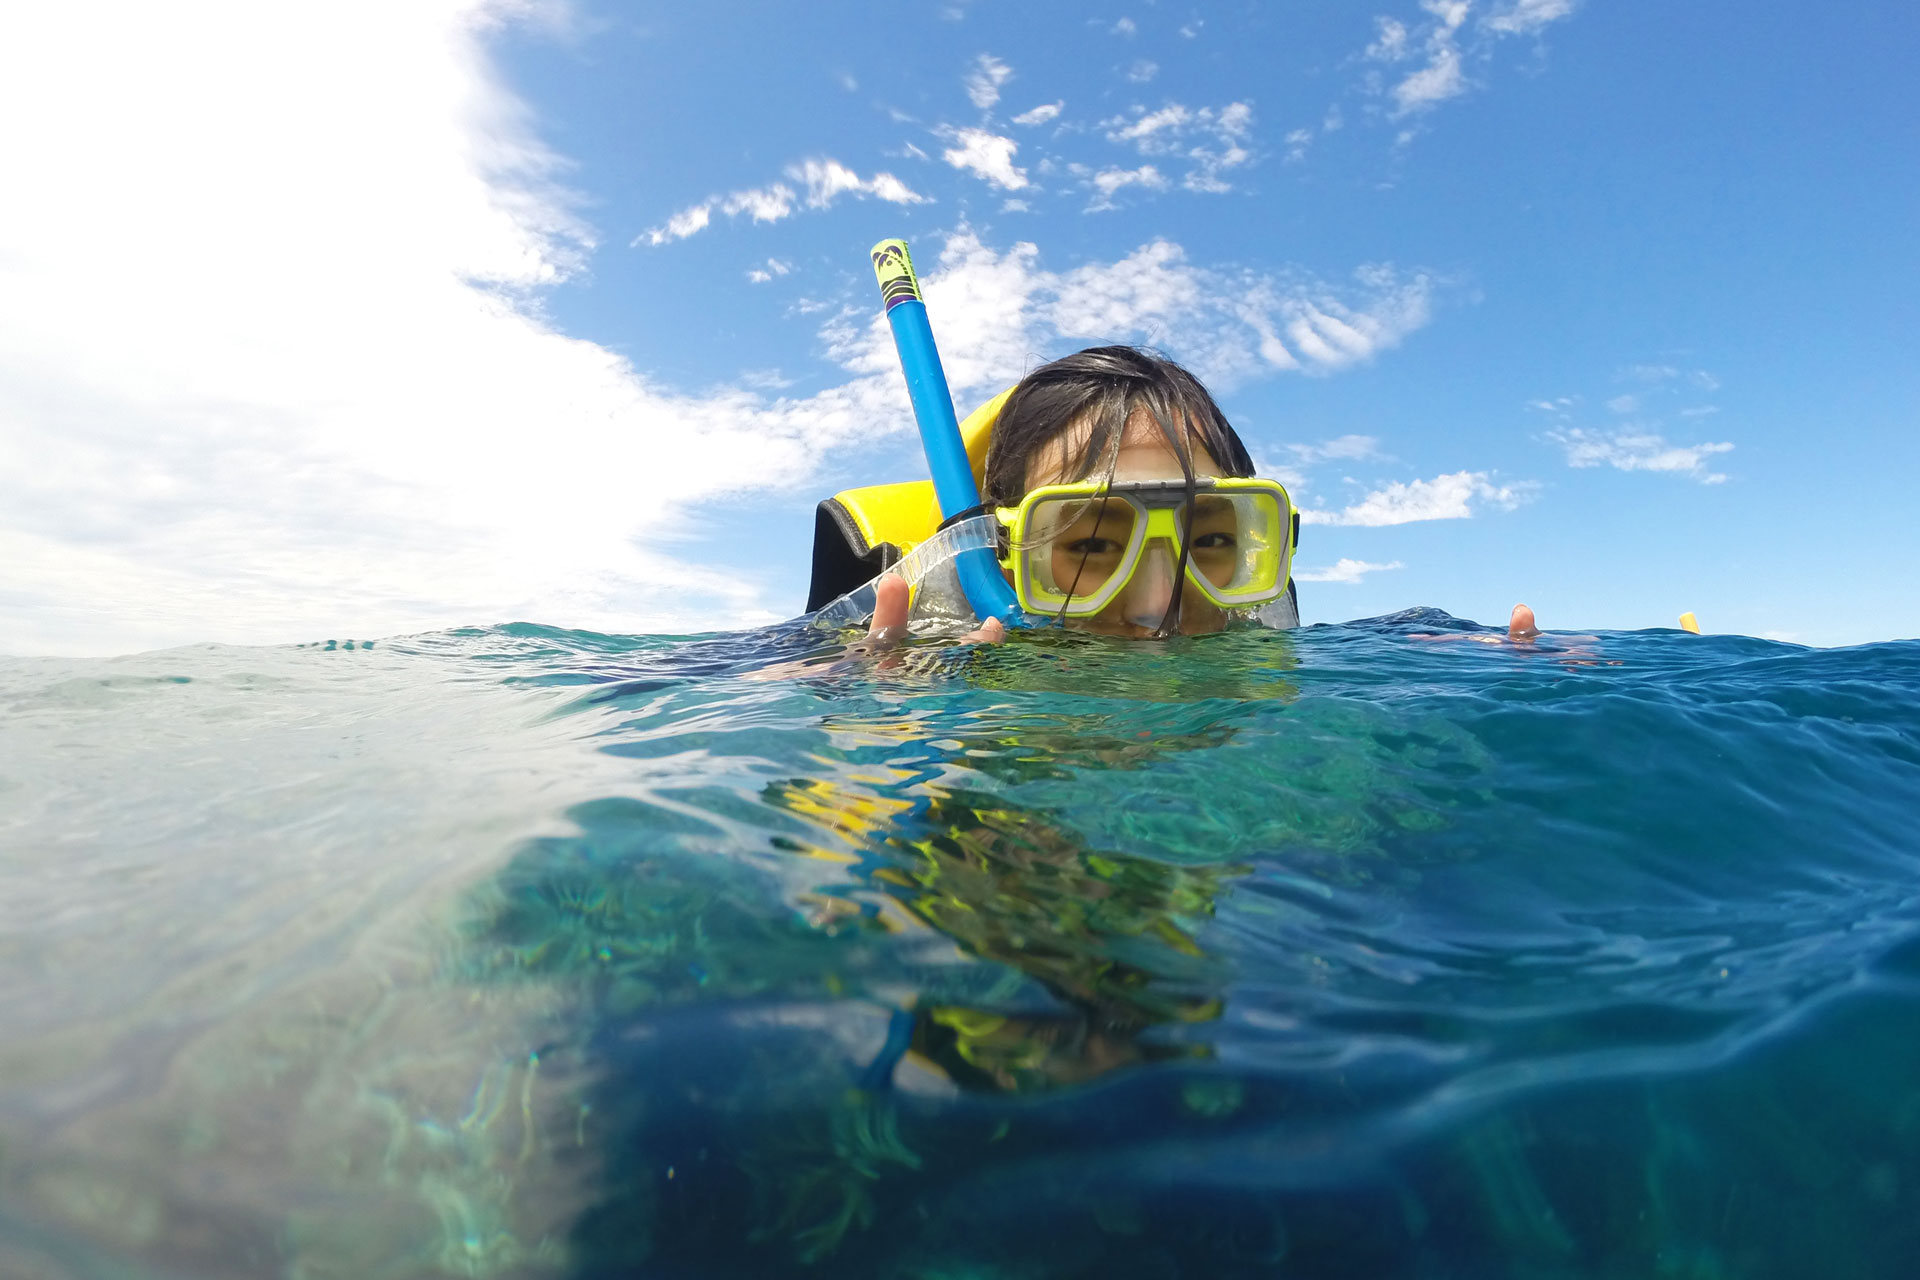 Leonie snorkelling at the Great Barrier Reef